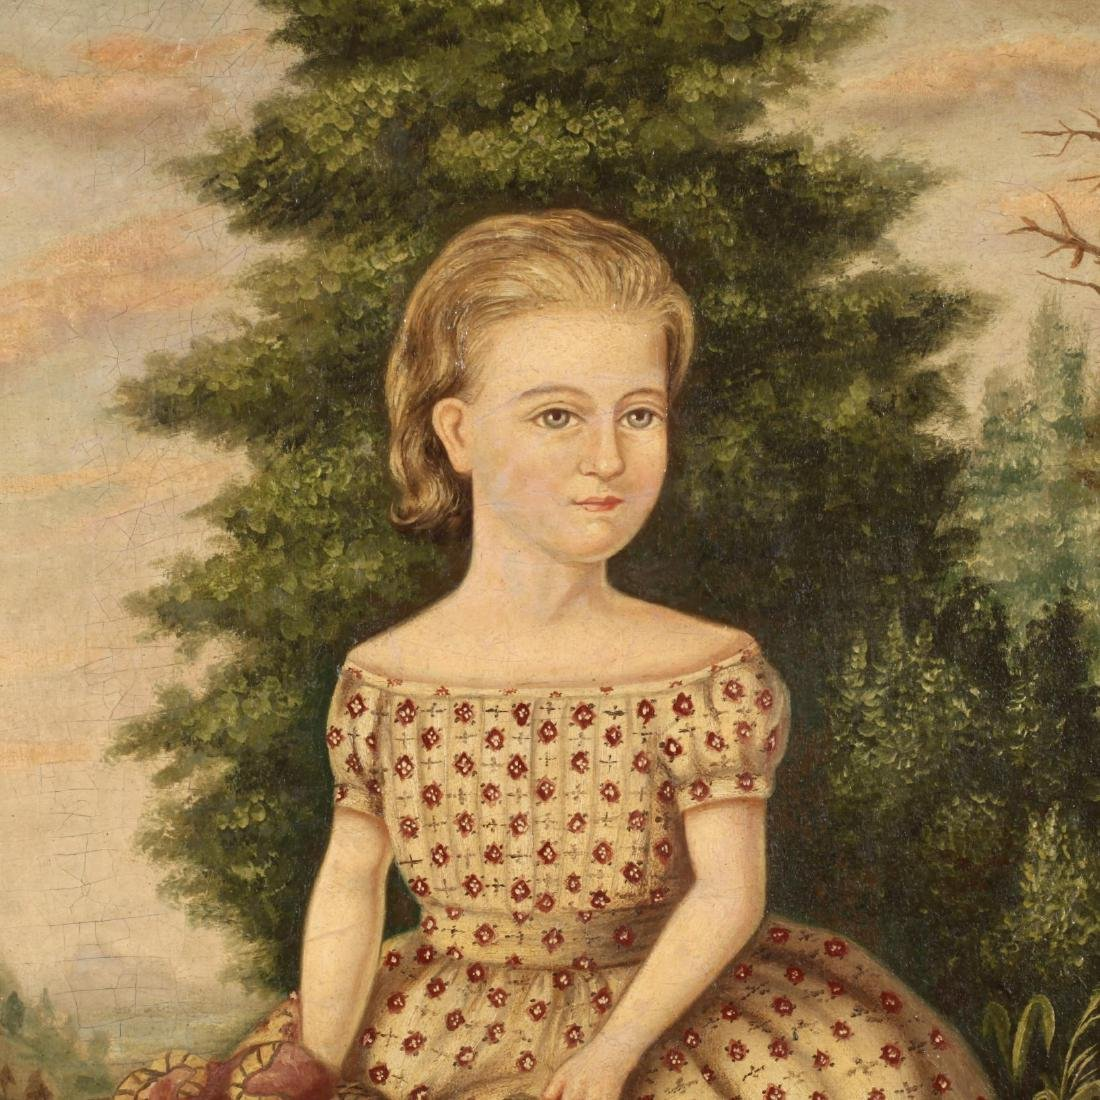 An Antique American School Portrait of a Young Girl - 2